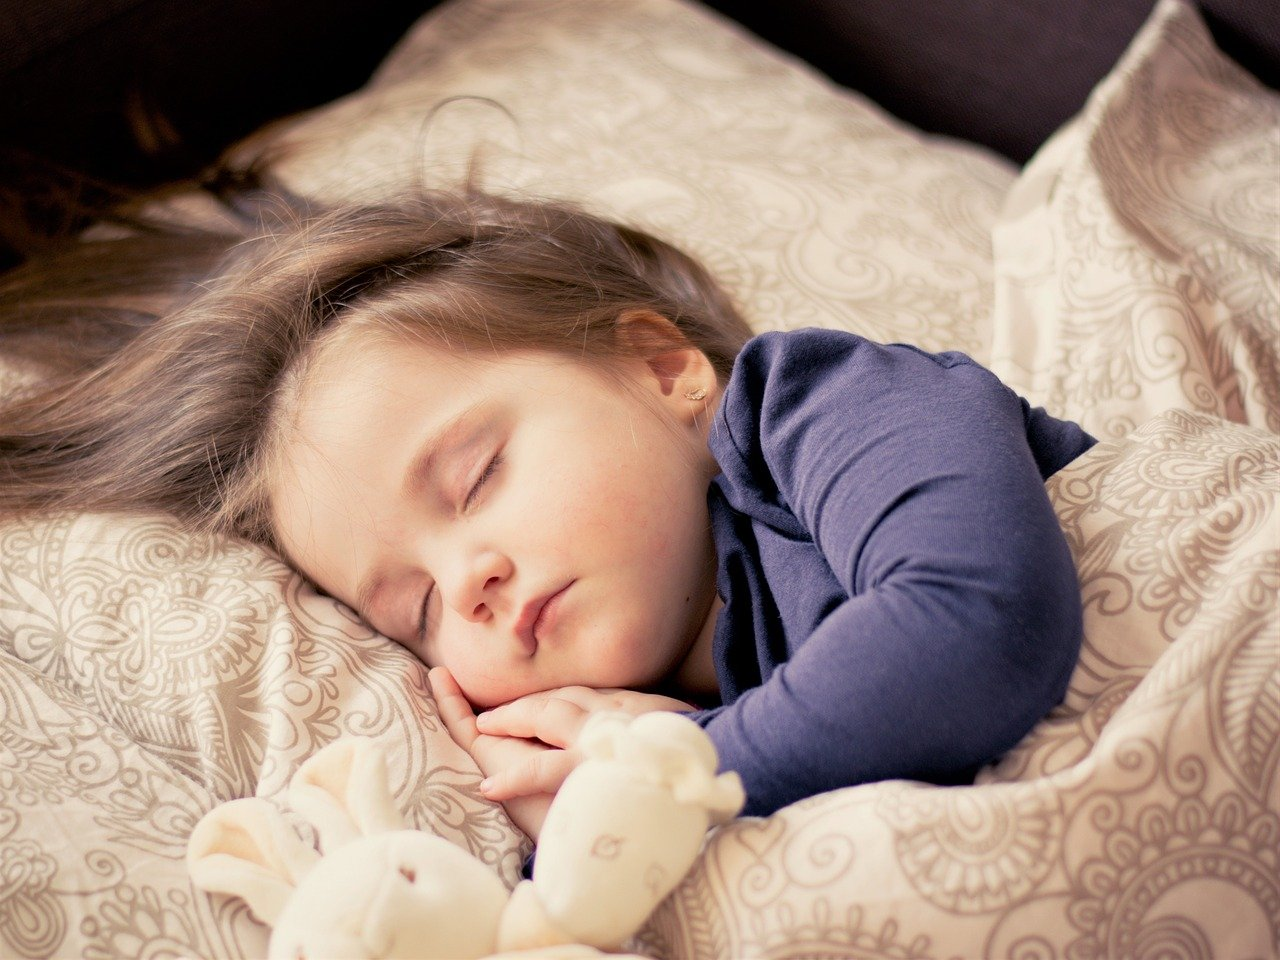 baby 1151351 1280 - When Do Kids Stop Napping?